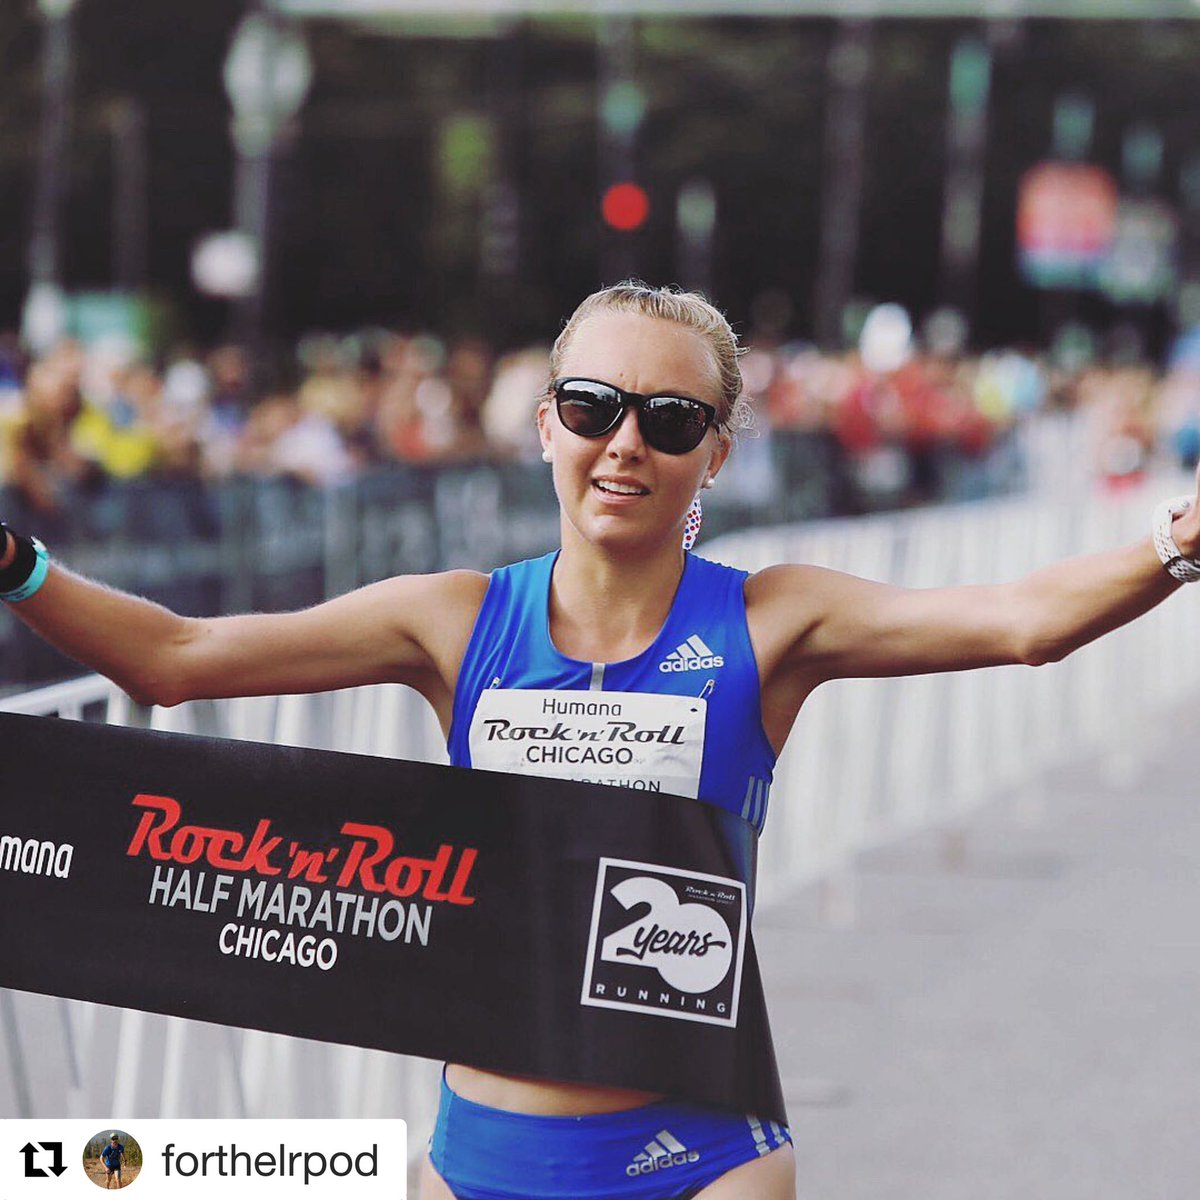 New podcast release! I chat with @ForTheLRPod about my fav things: momming-running-coaching 👶🏼🏃♀️⏱